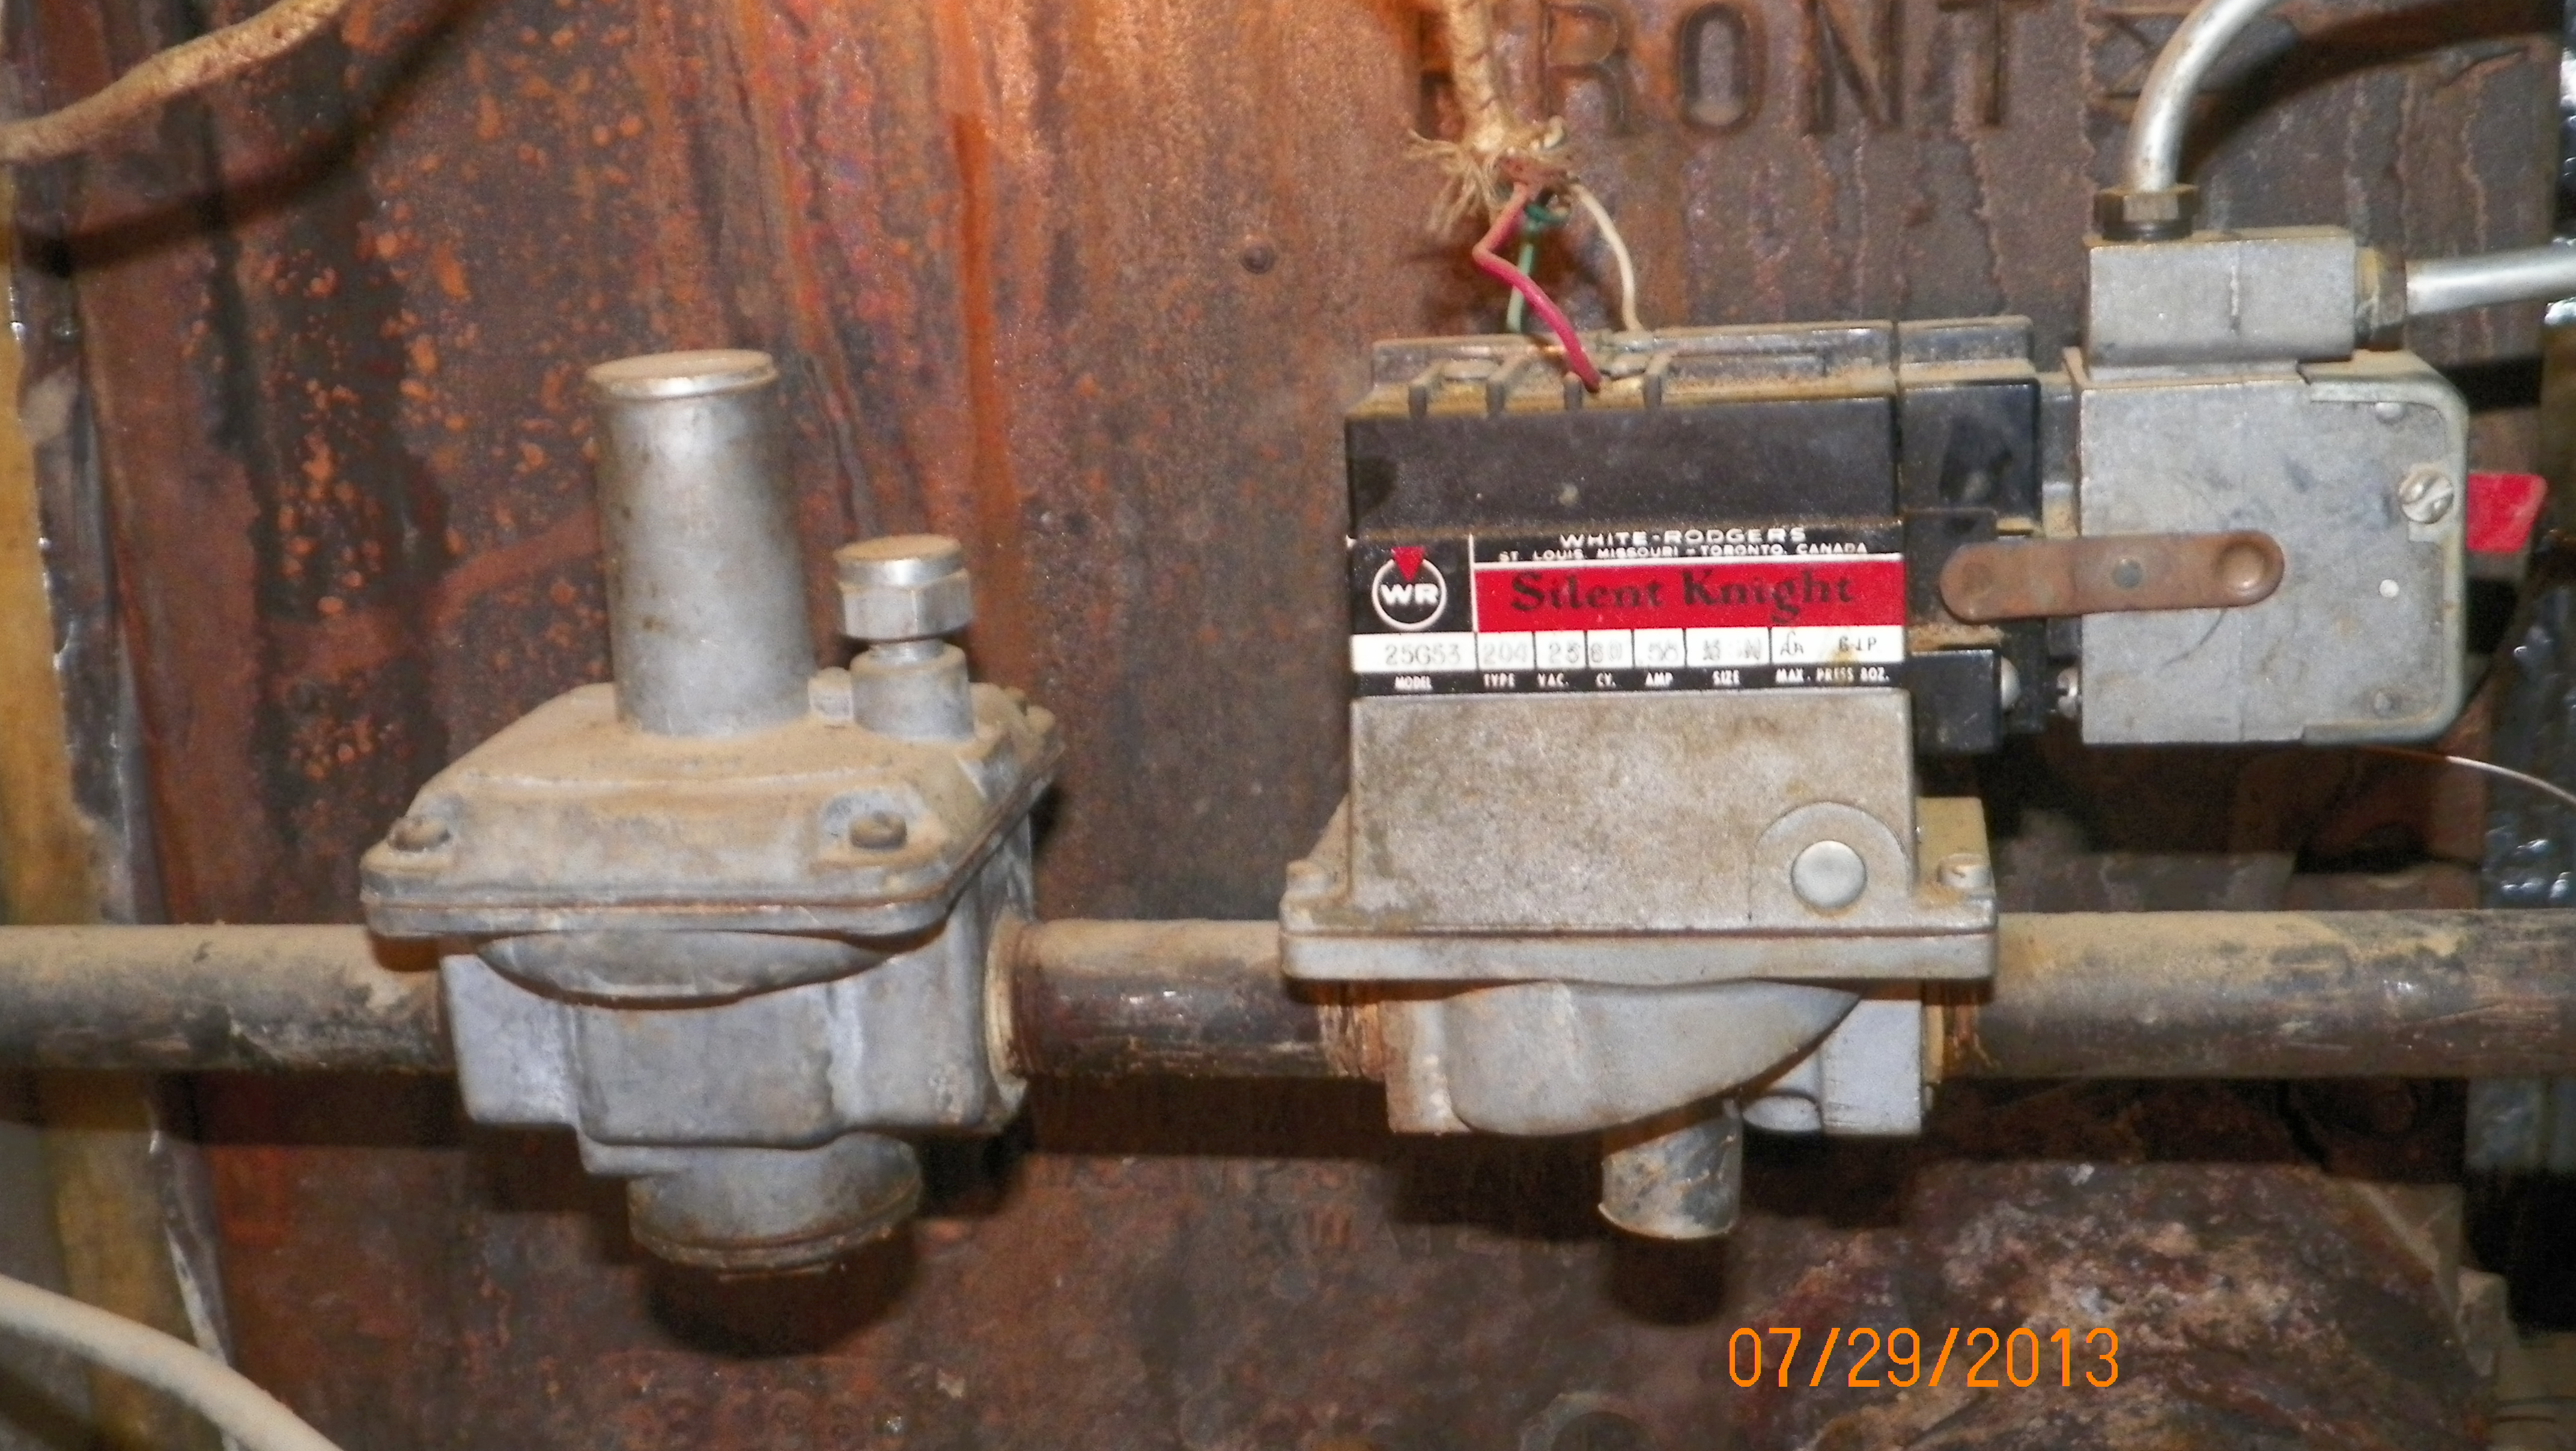 I Need A New Gas Valve Set Up For A Weil Mclain Boiler 5e